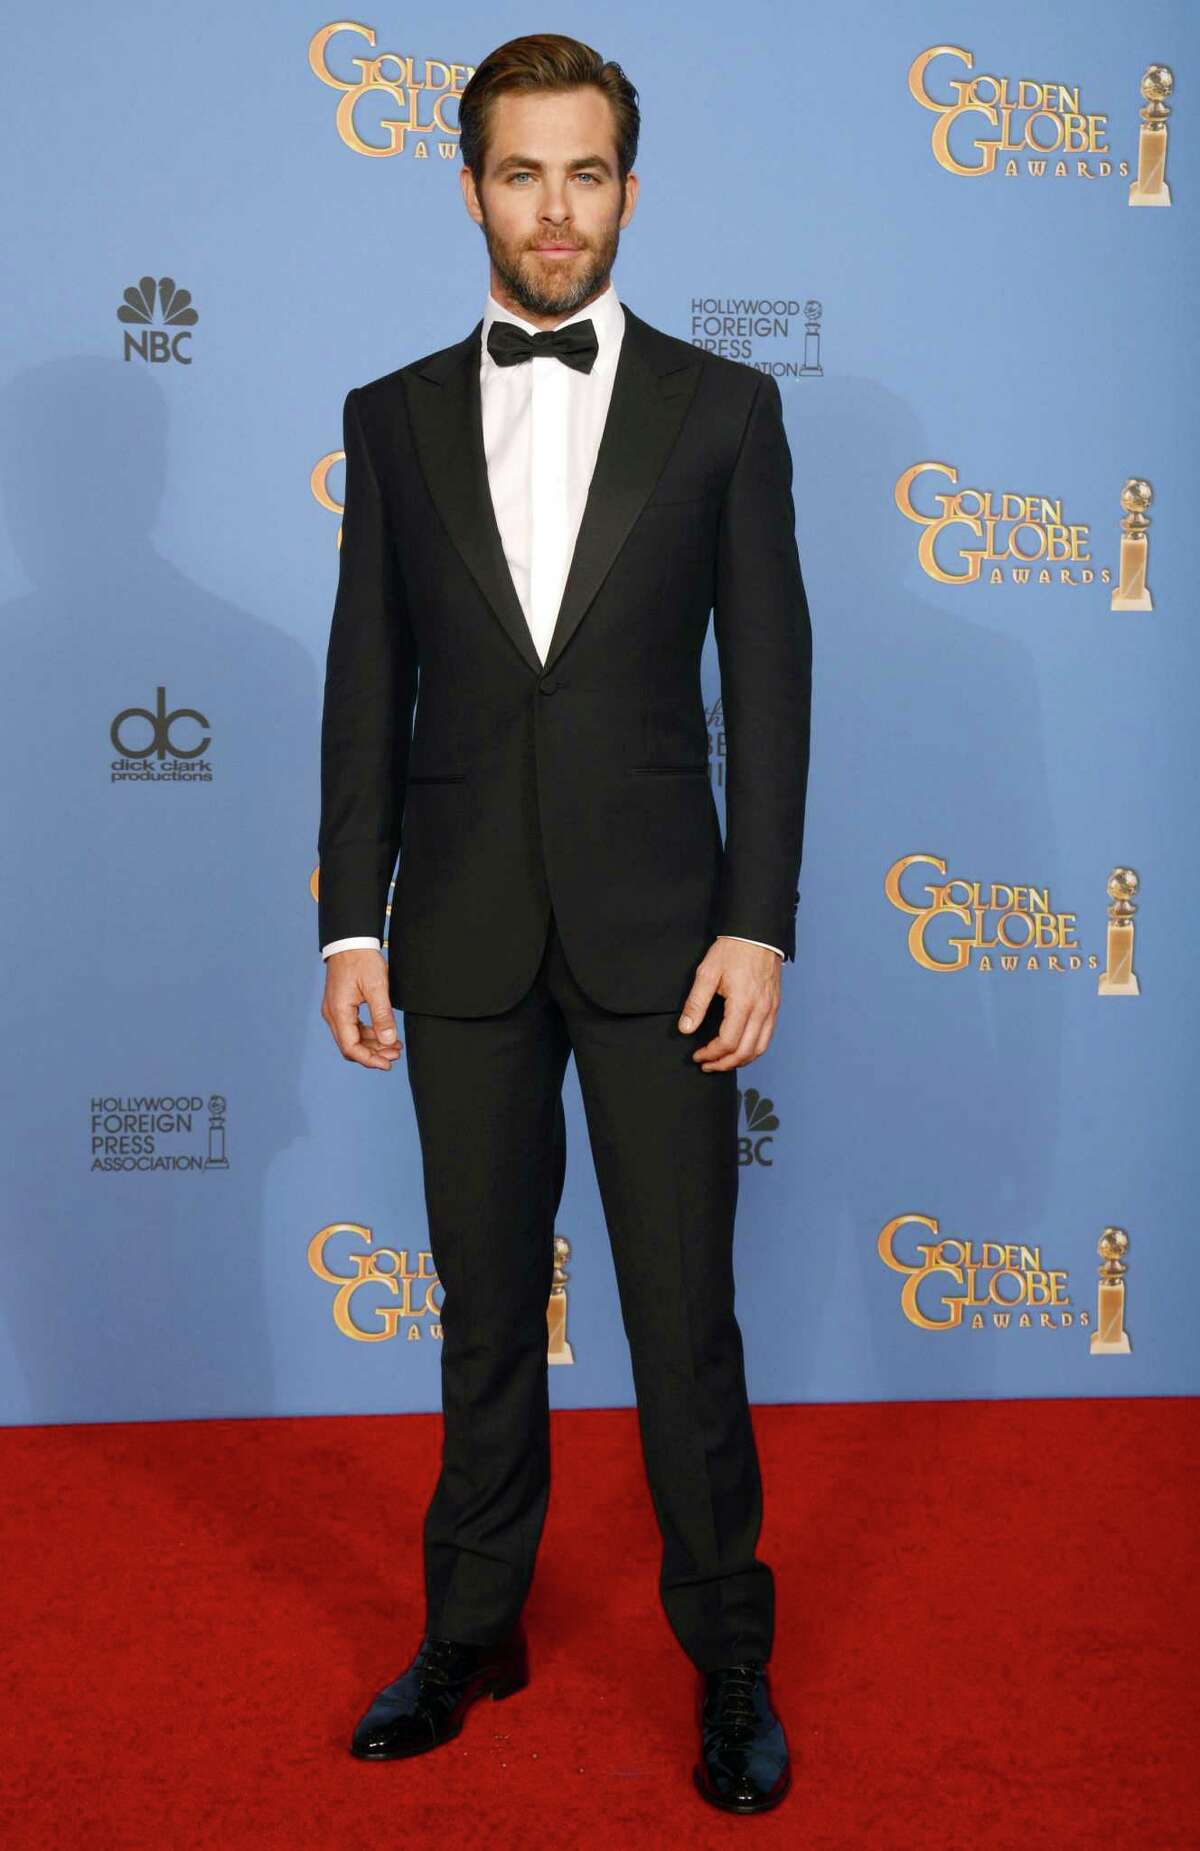 """FILE - In this Sunday, Jan. 12, 2014 file photo, actor Chris Pine poses in the press room at the 71st annual Golden Globe Awards at the Beverly Hilton Hotel, in Beverly Hills, Calif. Pine says the US should have done more in the run-up to the Olympics to protest Russia?'s anti-gay legislation, which he calls ?""""clearly awful, archaic, hostile nonsense.?"""" ?""""I think we should do more than just send gay Olympians there,?"""" he said in an interview while promoting his film ?""""Jack Ryan: Shadow Recruit,"""" which opens Friday, Jan. 17, 2014. (Photo by Jordan Strauss/Invision/AP) ORG XMIT: CAET733"""